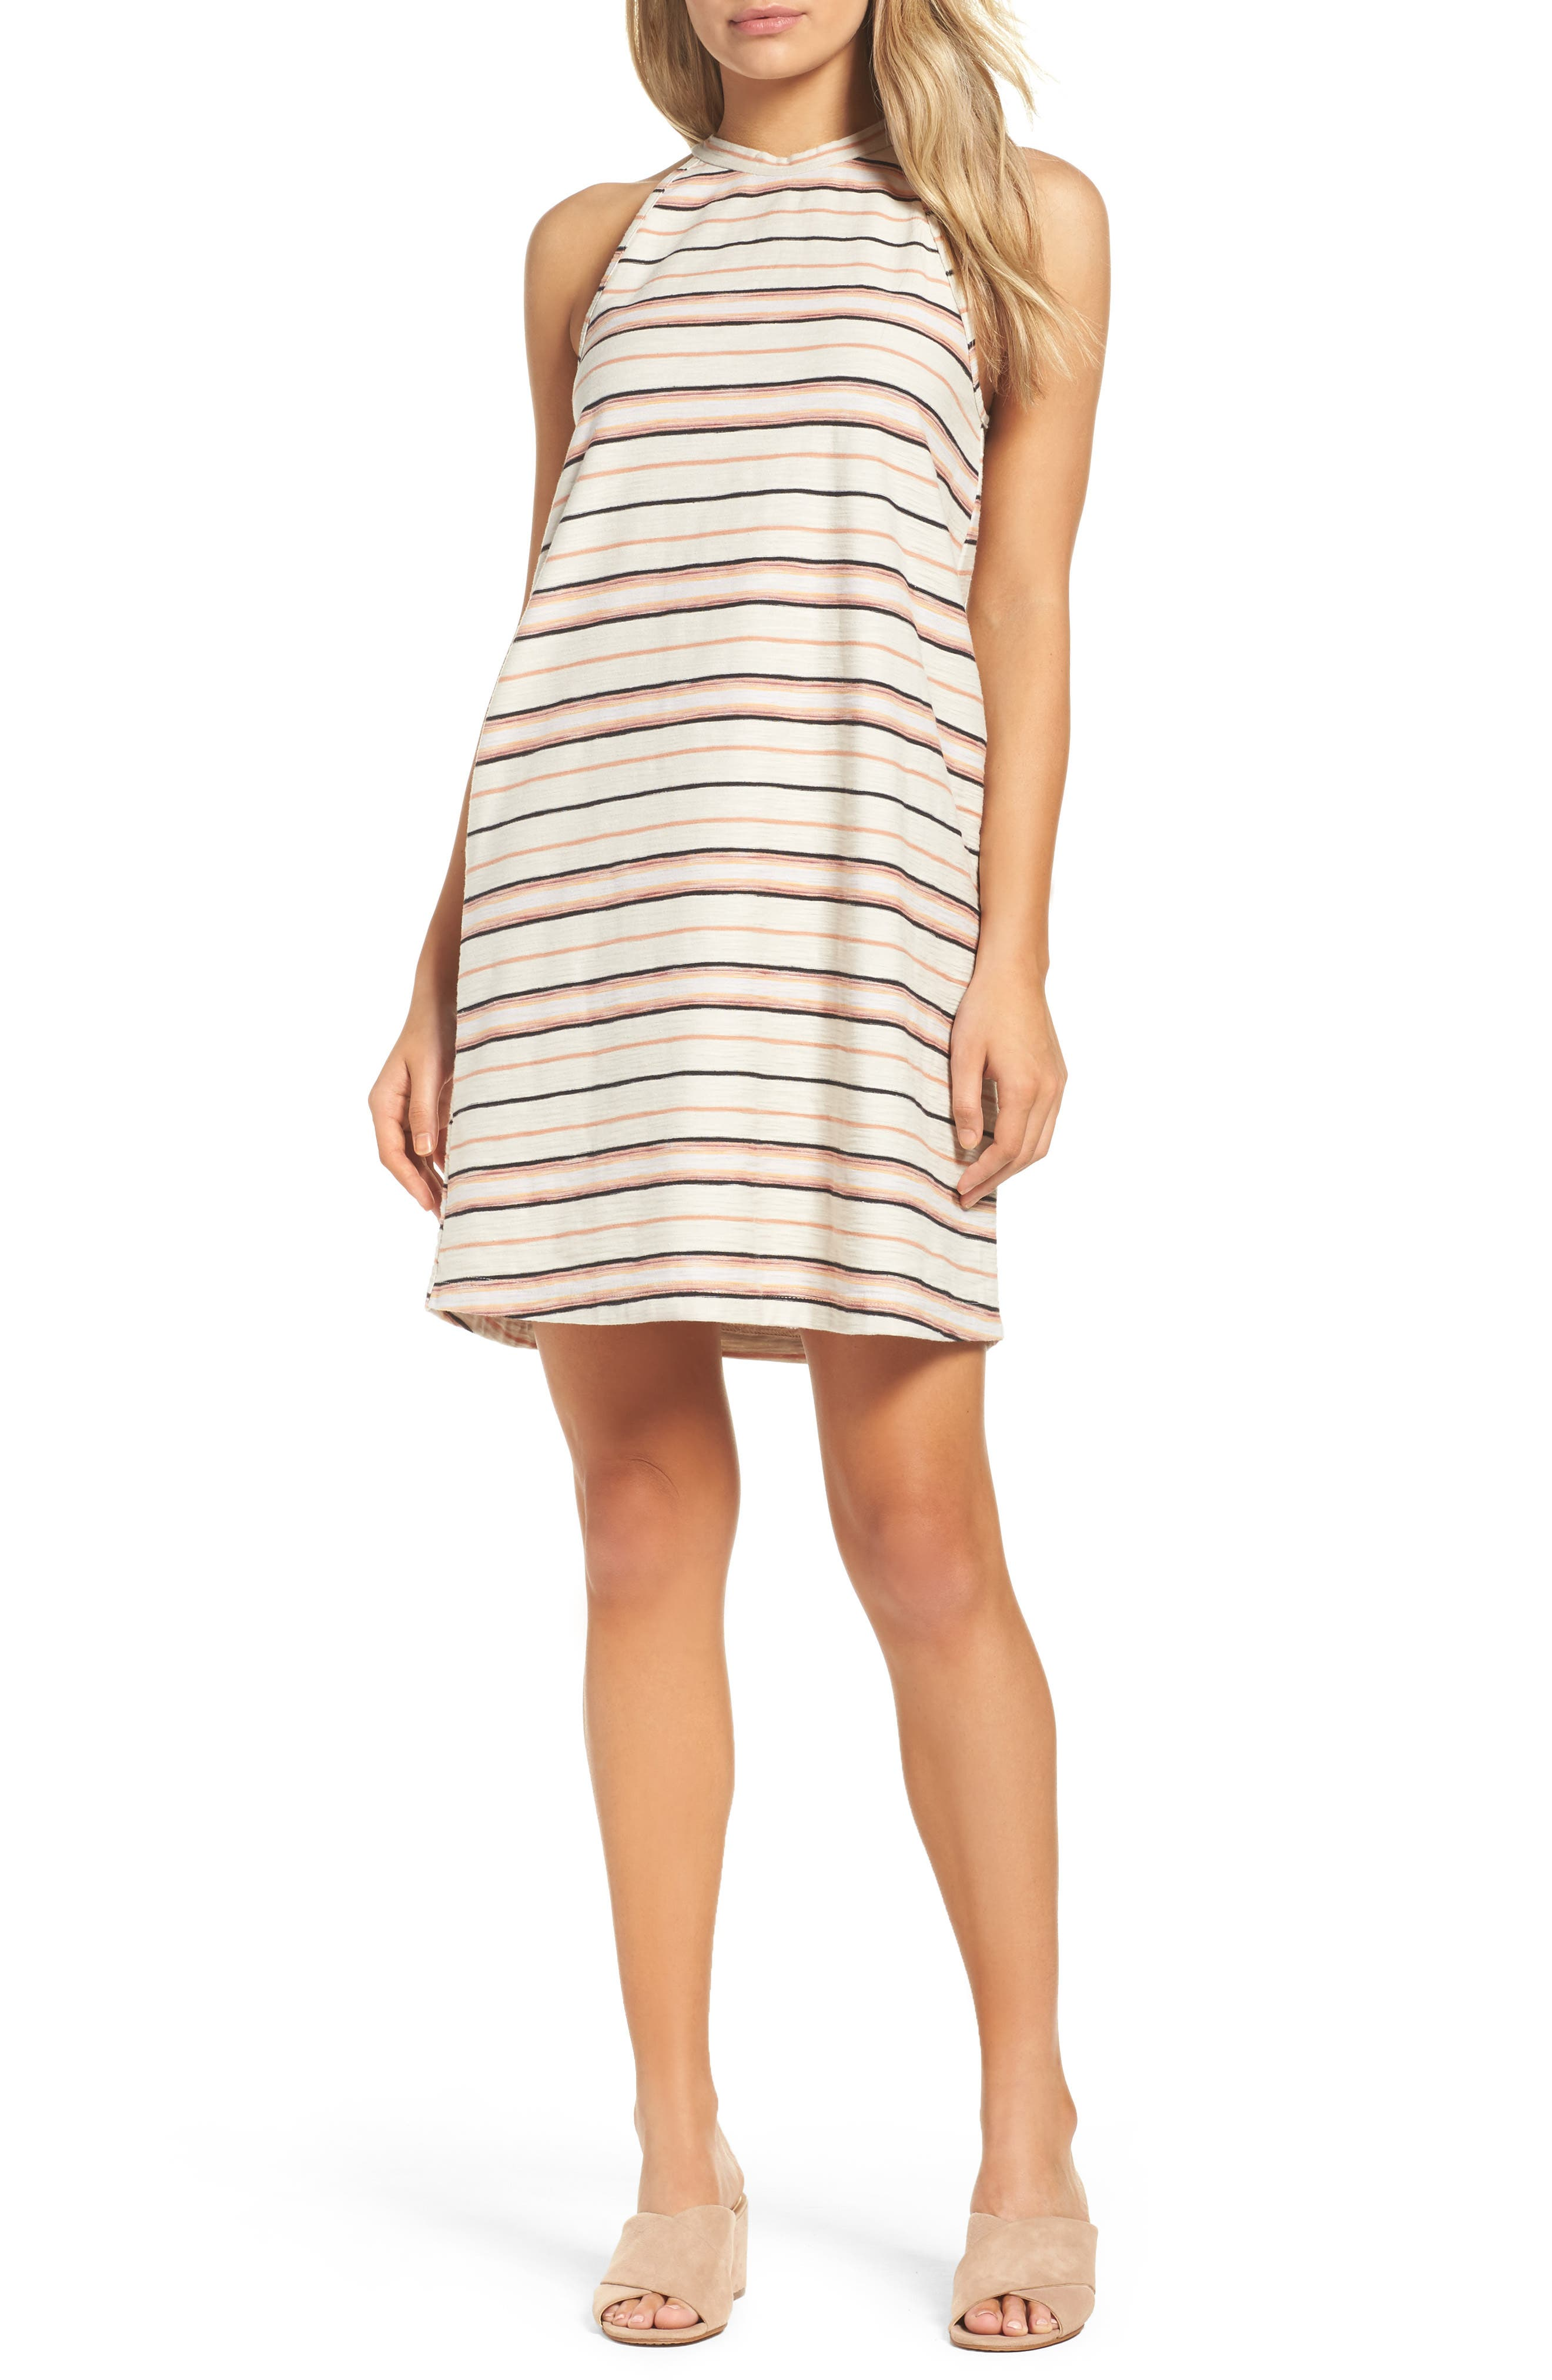 Alternate Image 1 Selected - Knot SIsters Field Day Stripe Dress